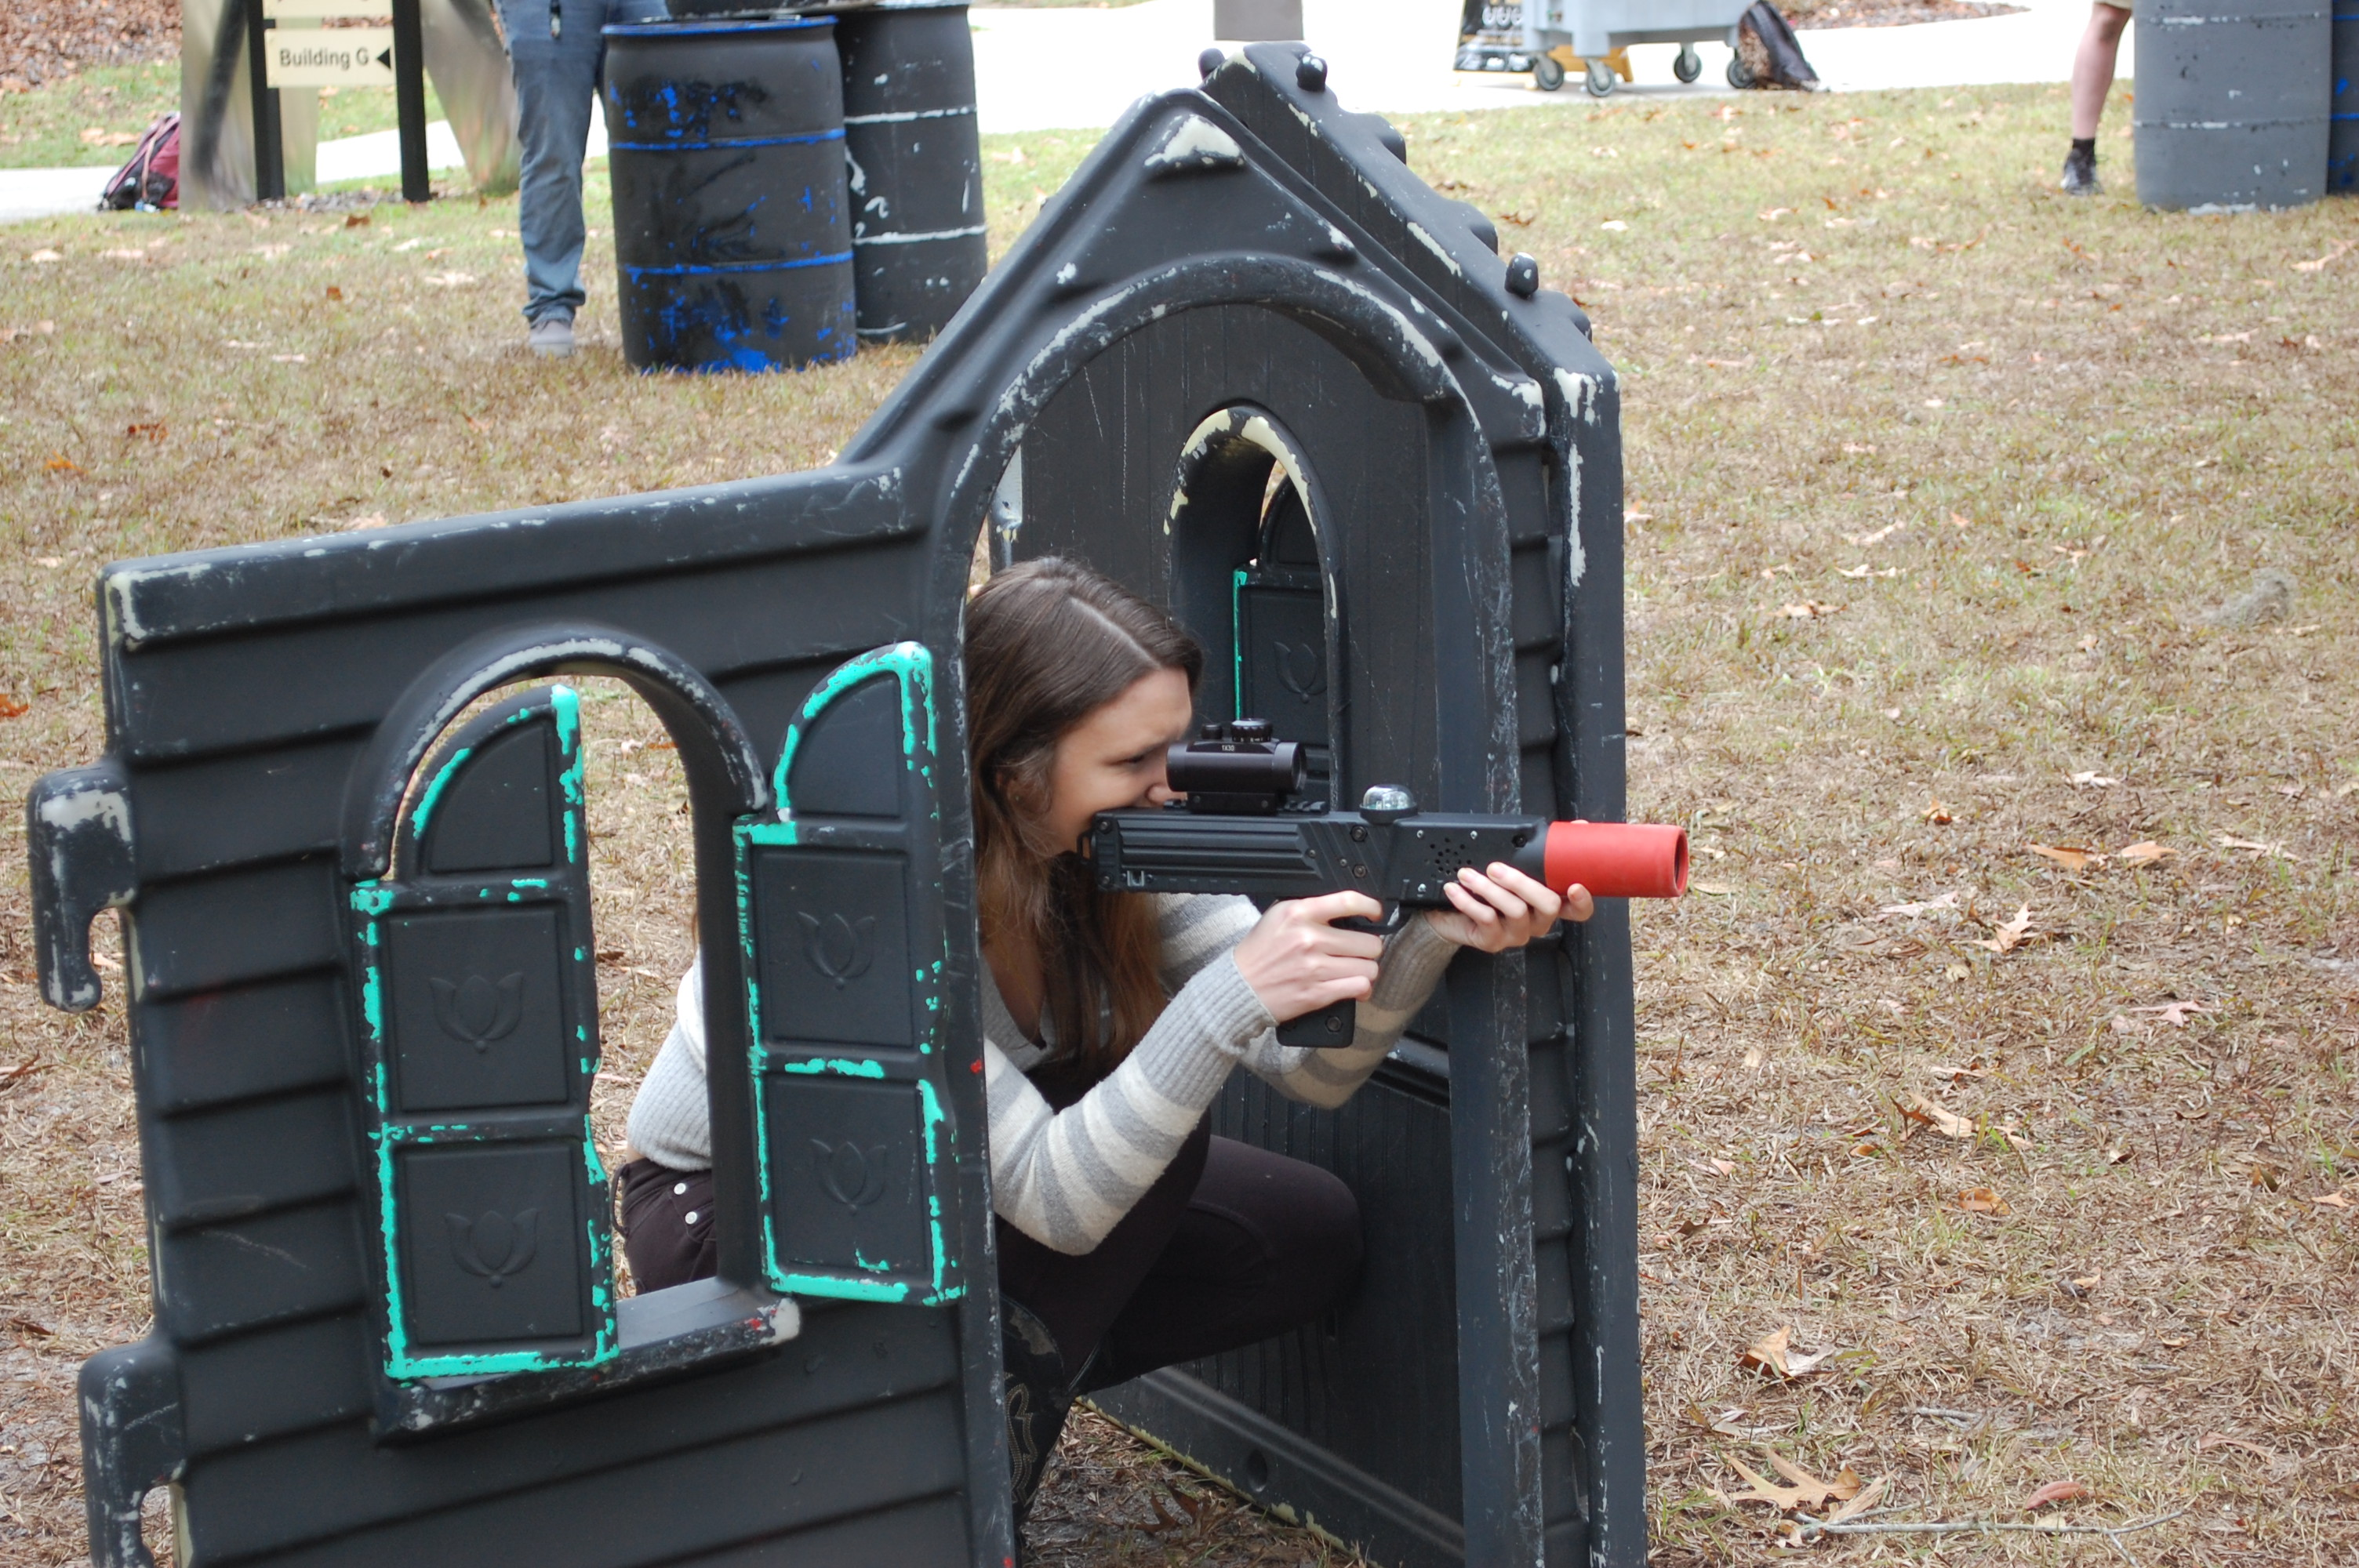 College Events in Florida - Stealth Mobile Laser Tag (66)